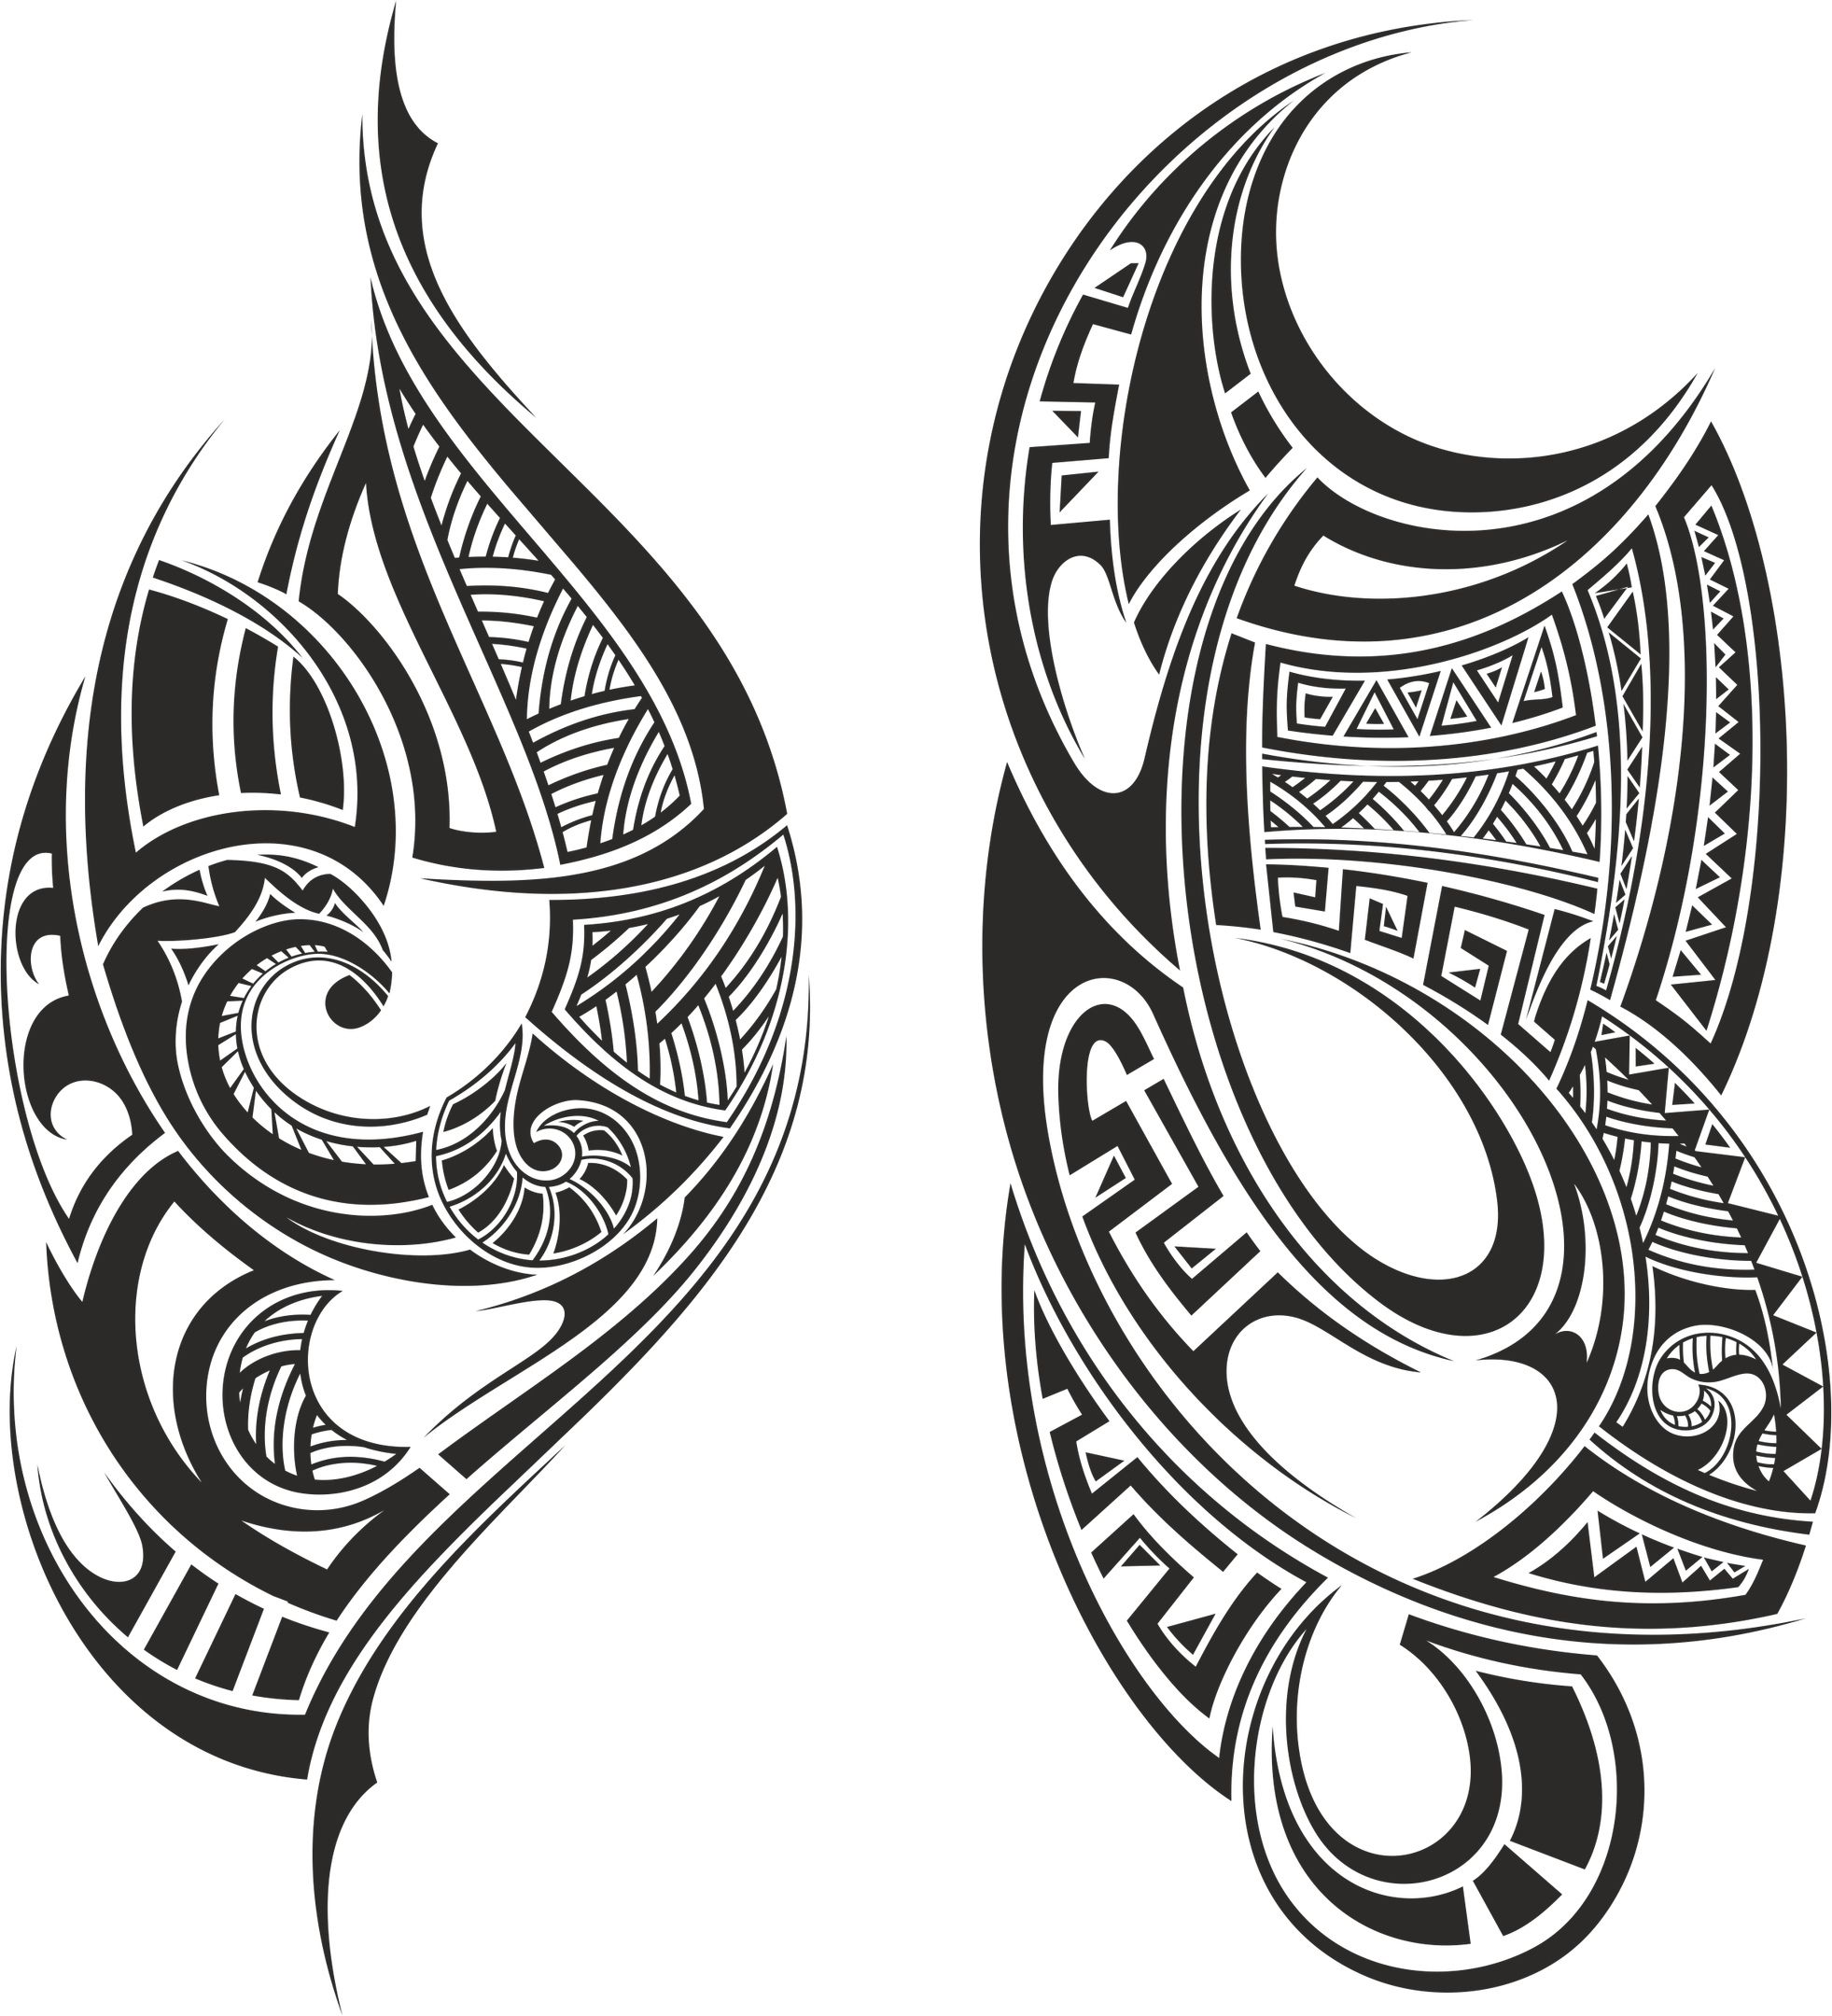 Tribal Tattoo Free Vector Coreldraw File Tribal Tattoos Maori Tattoo Samoan Tattoo